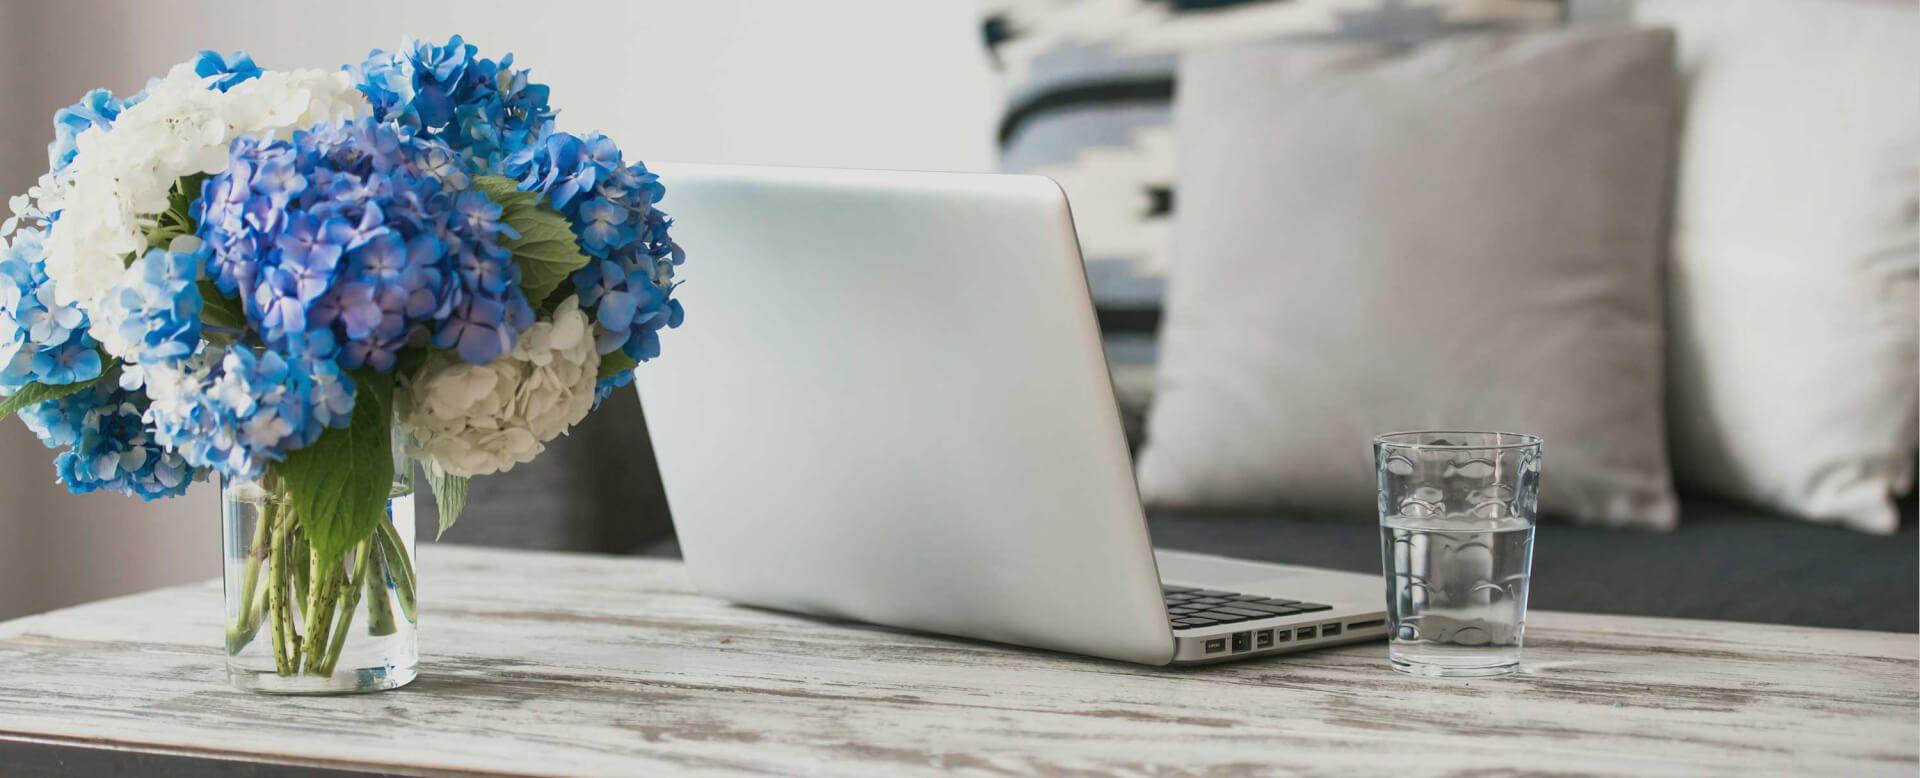 Blue and White flowers on a table with a silver laptop